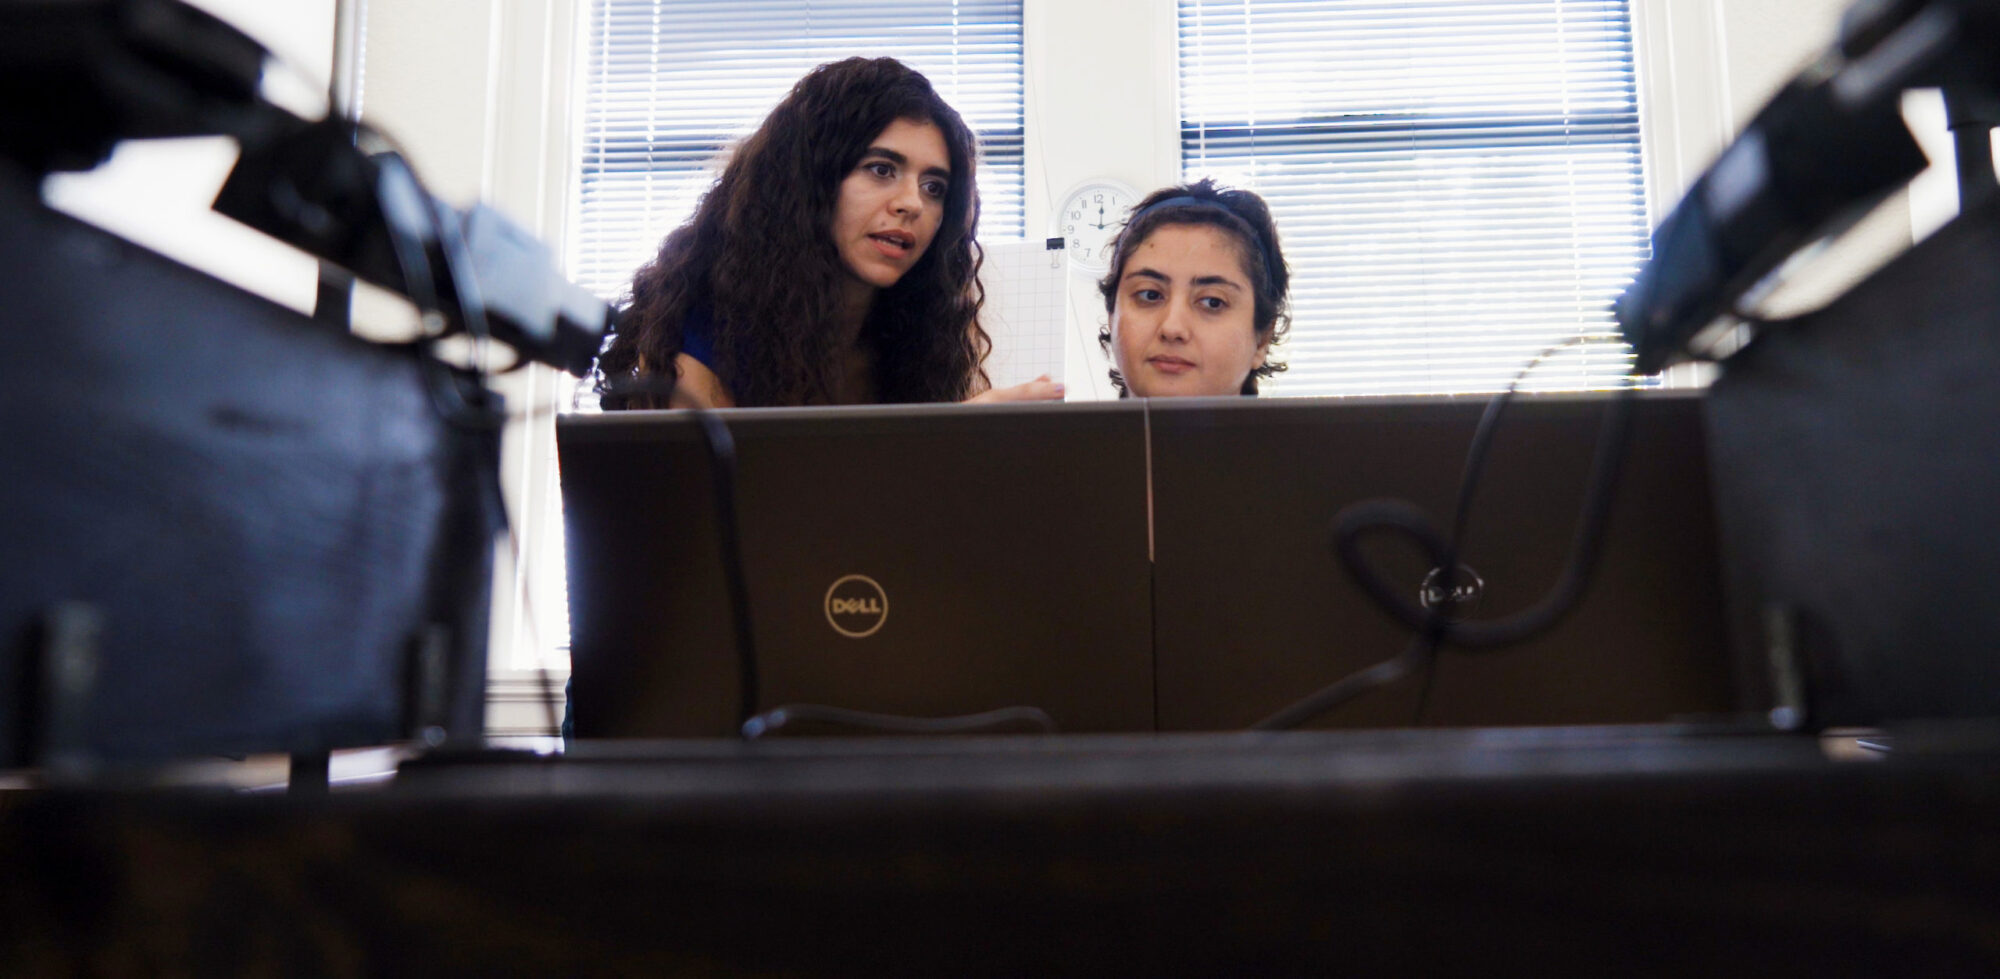 Two females, one is teaching the other something about the computer.